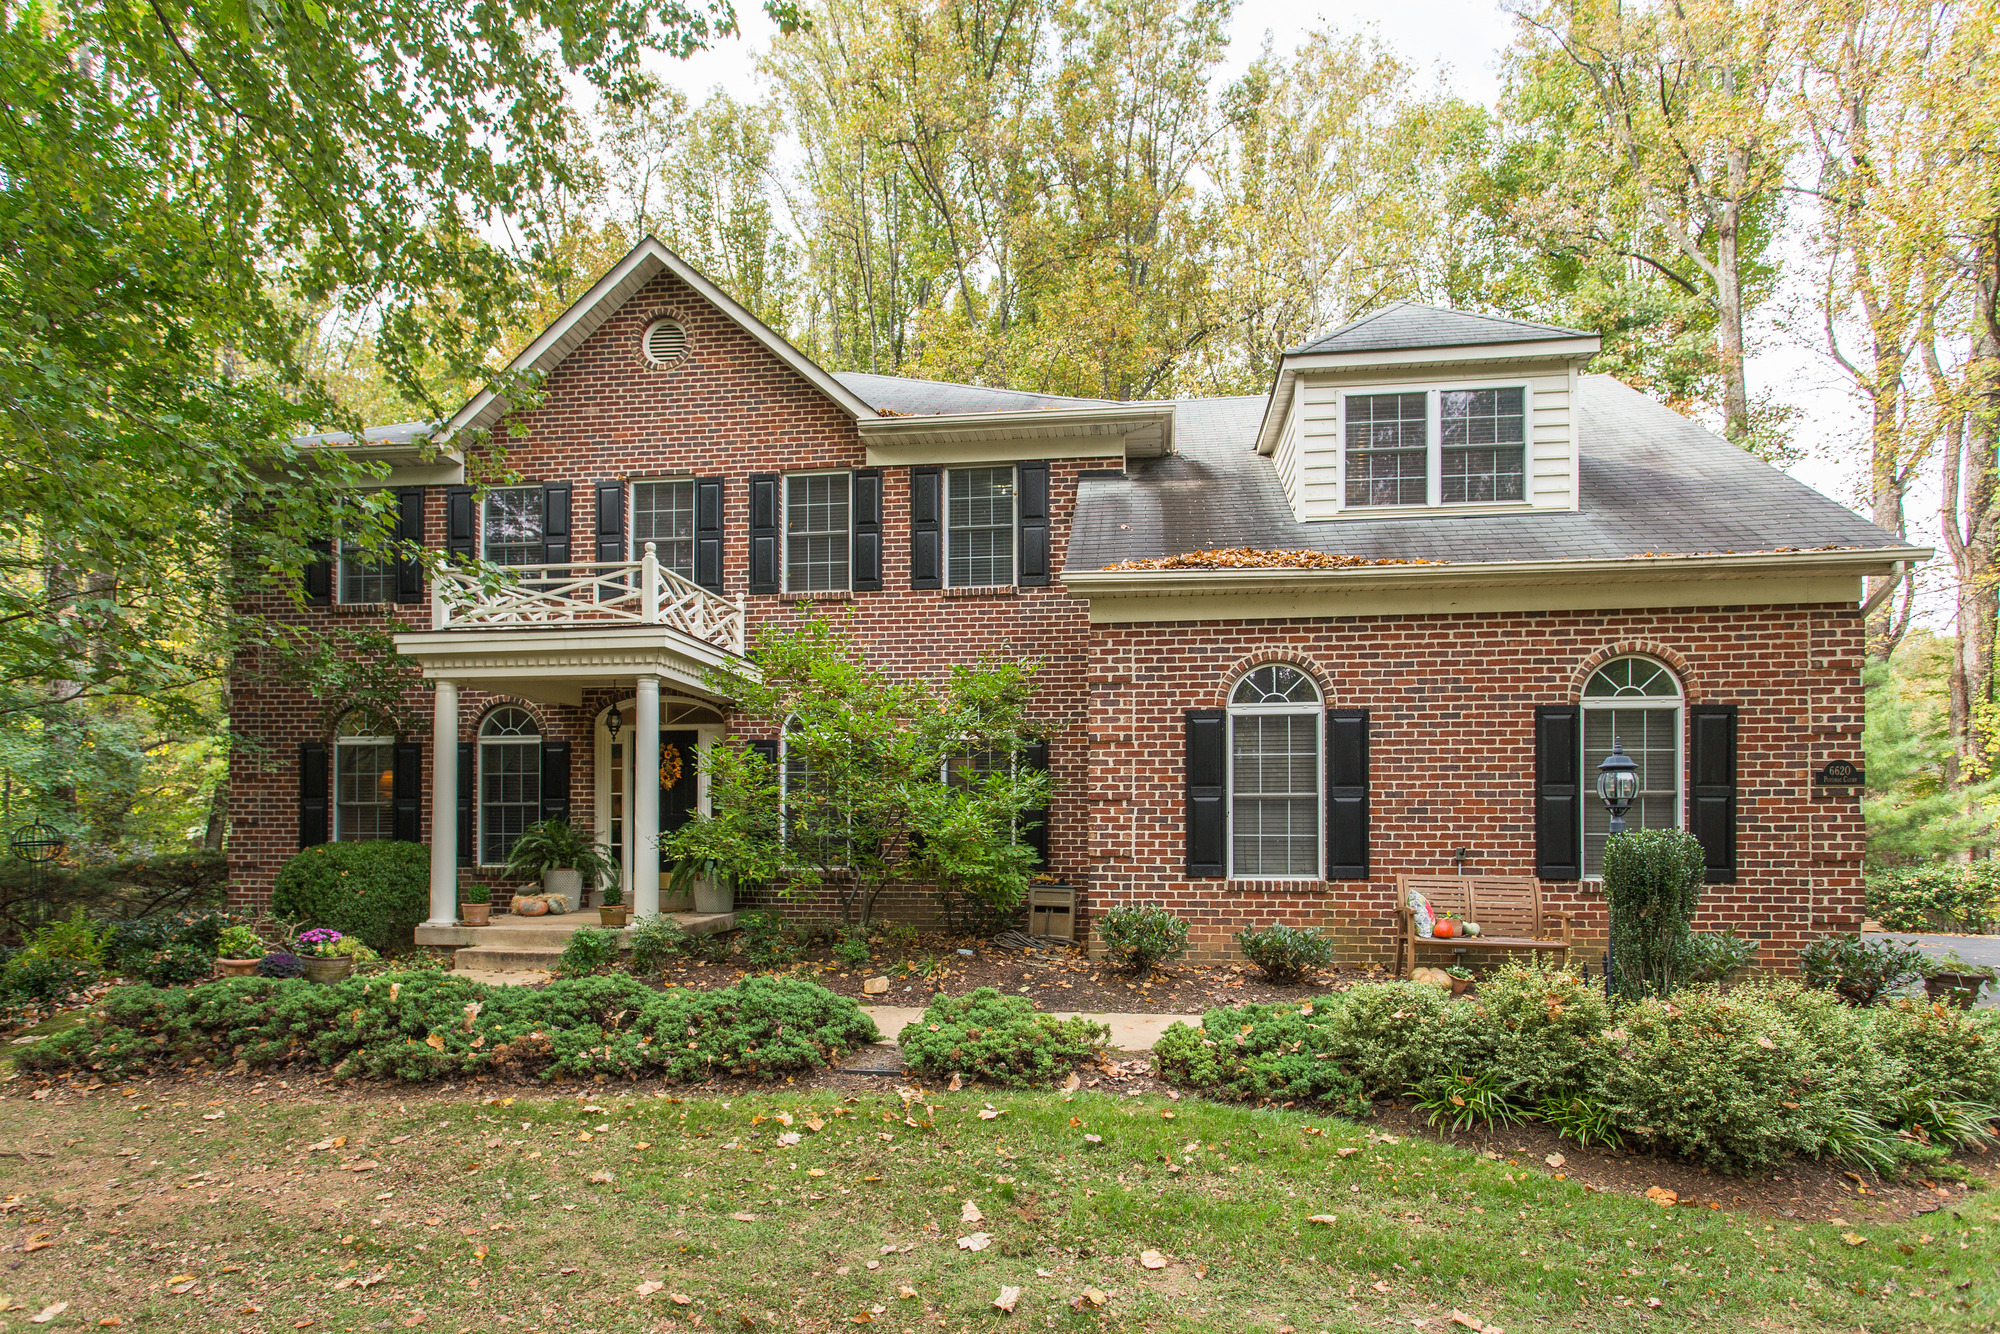 6620 POTOMAC COURT, WARRENTON, Virginia 20187 - Gorgeous Curb Appeal | Listed for Sale by The Girls of Real Estate